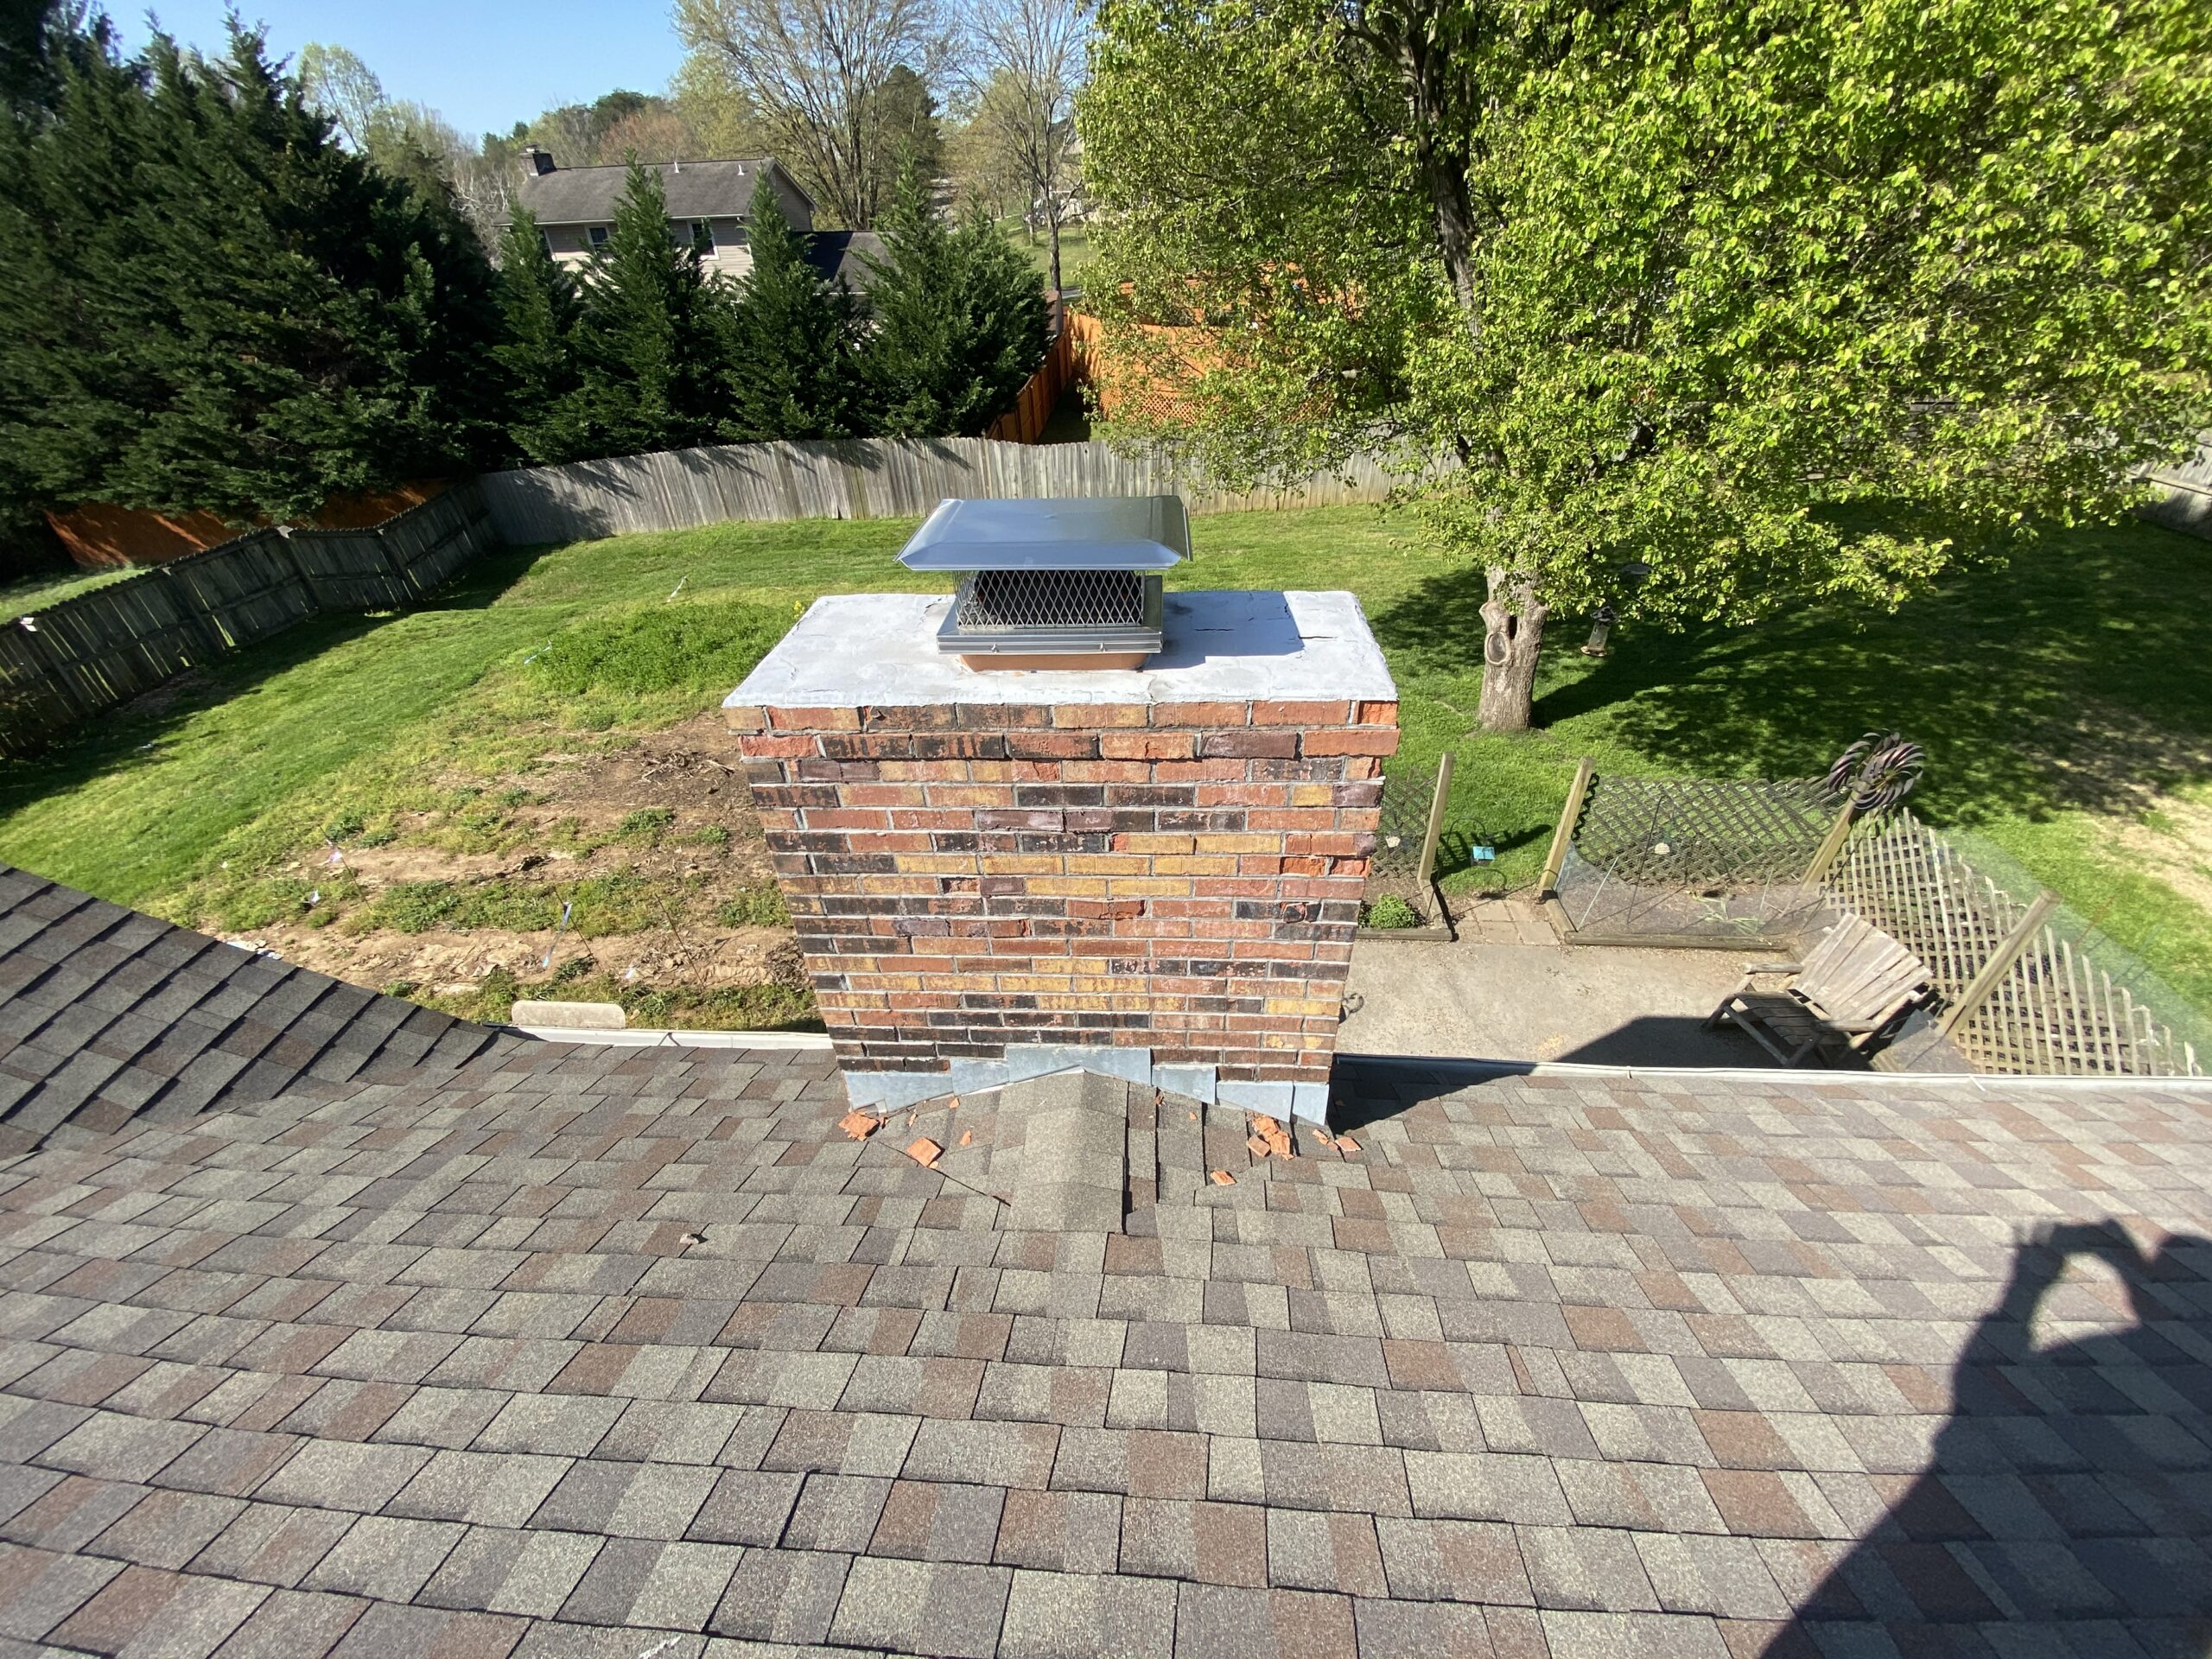 This is a picture of a brick chimney with leak issues